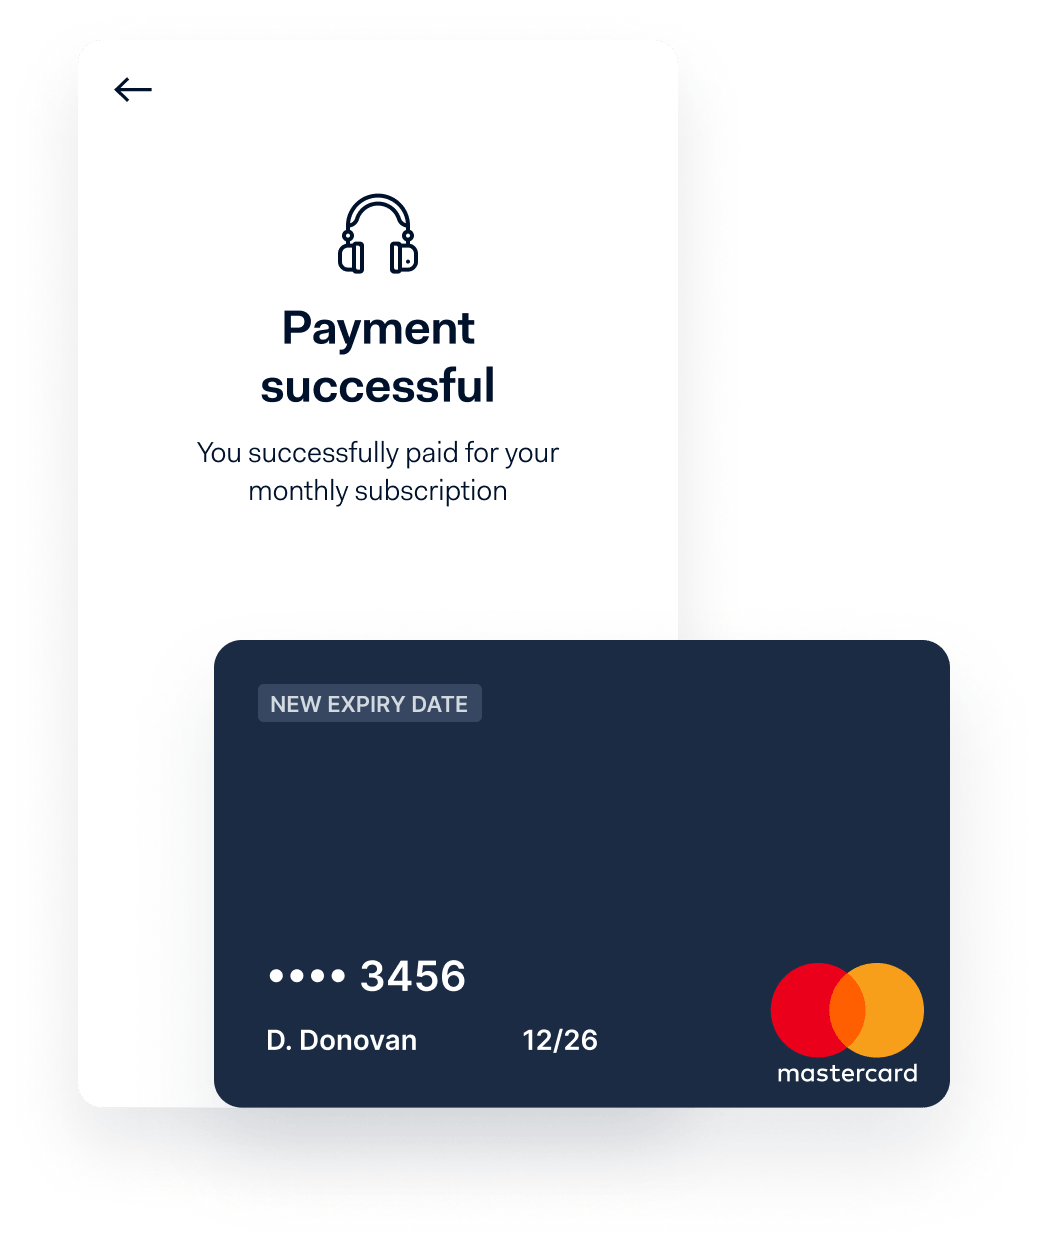 Successful payment screen and credit card